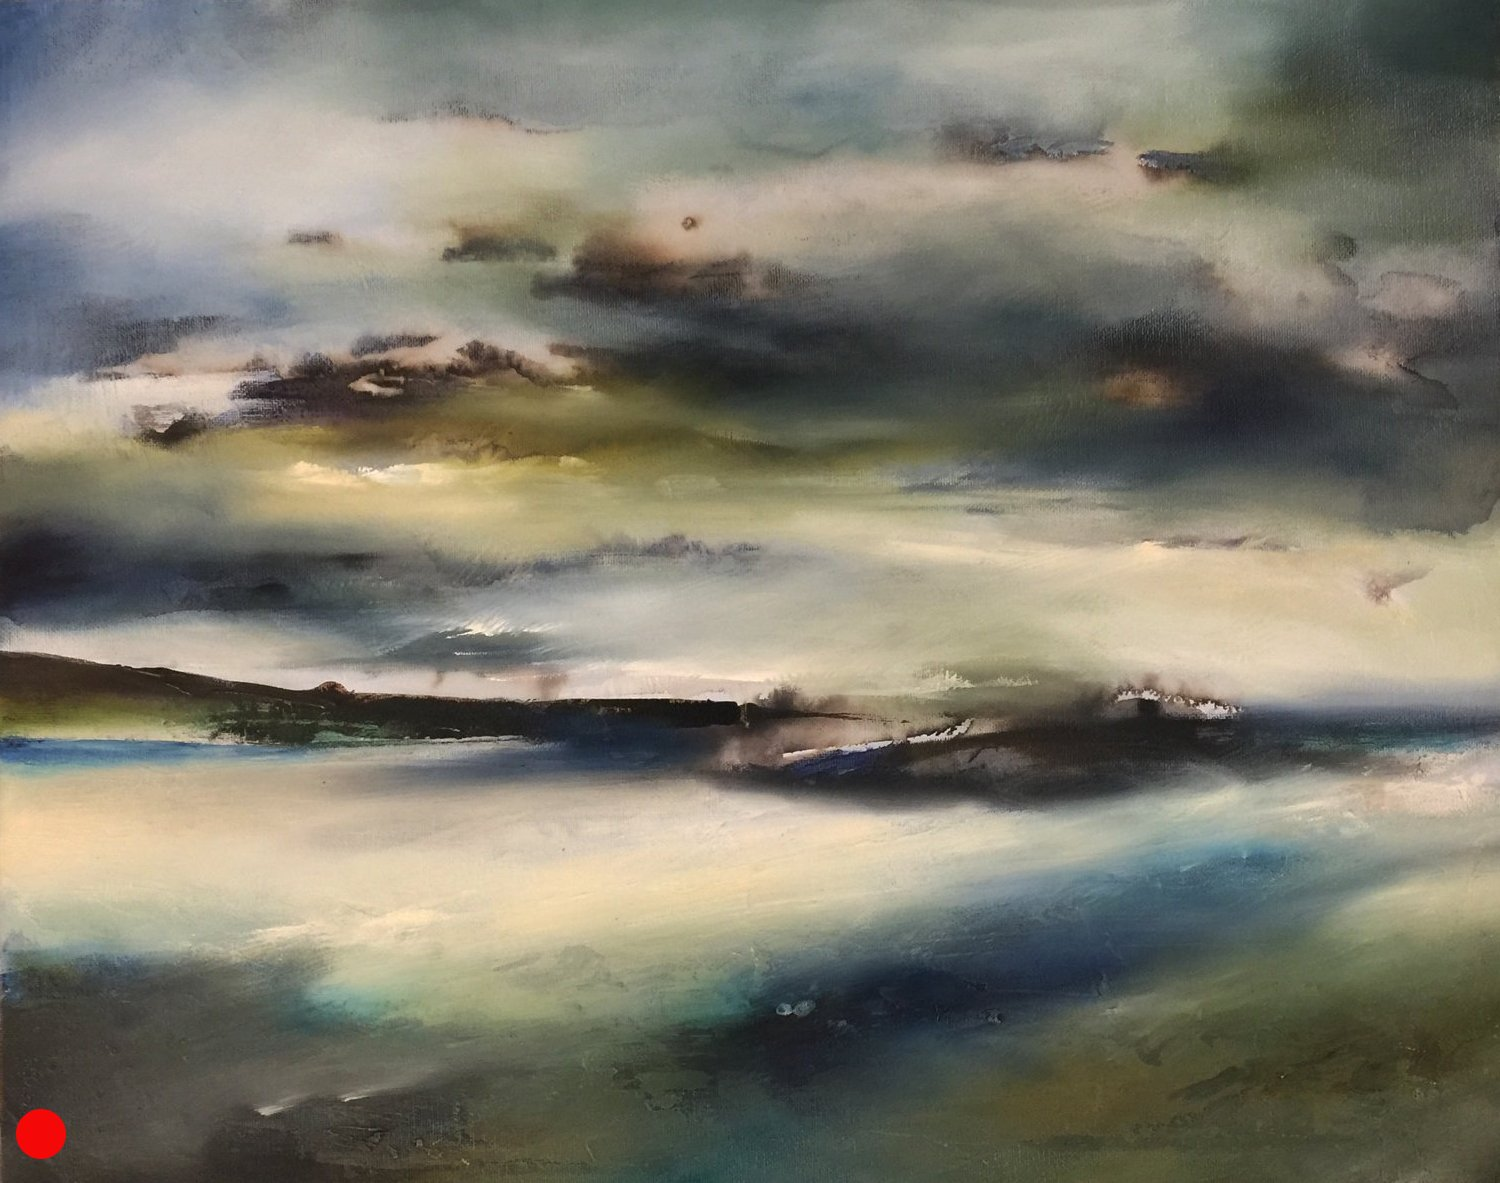 Cloudy Bay by Joanne Duffy